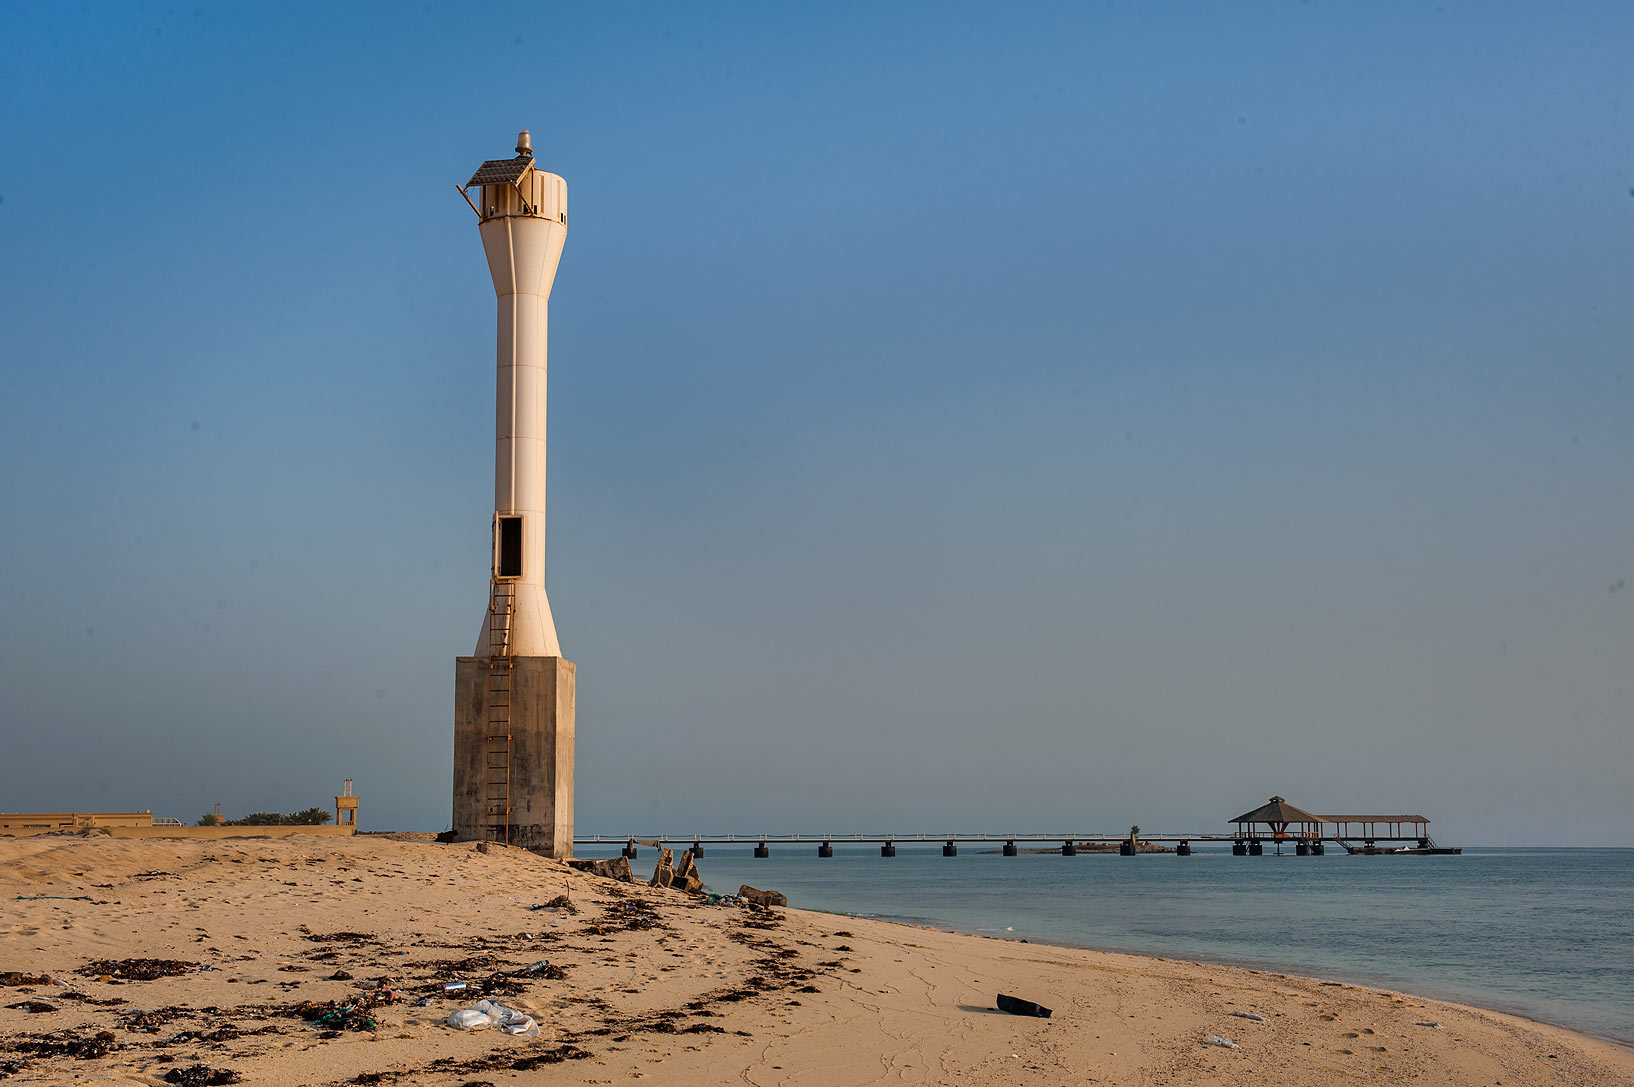 Lighthouse on a beach in Al Ghariya (Ra's Umm...western coast, view from south. Qatar